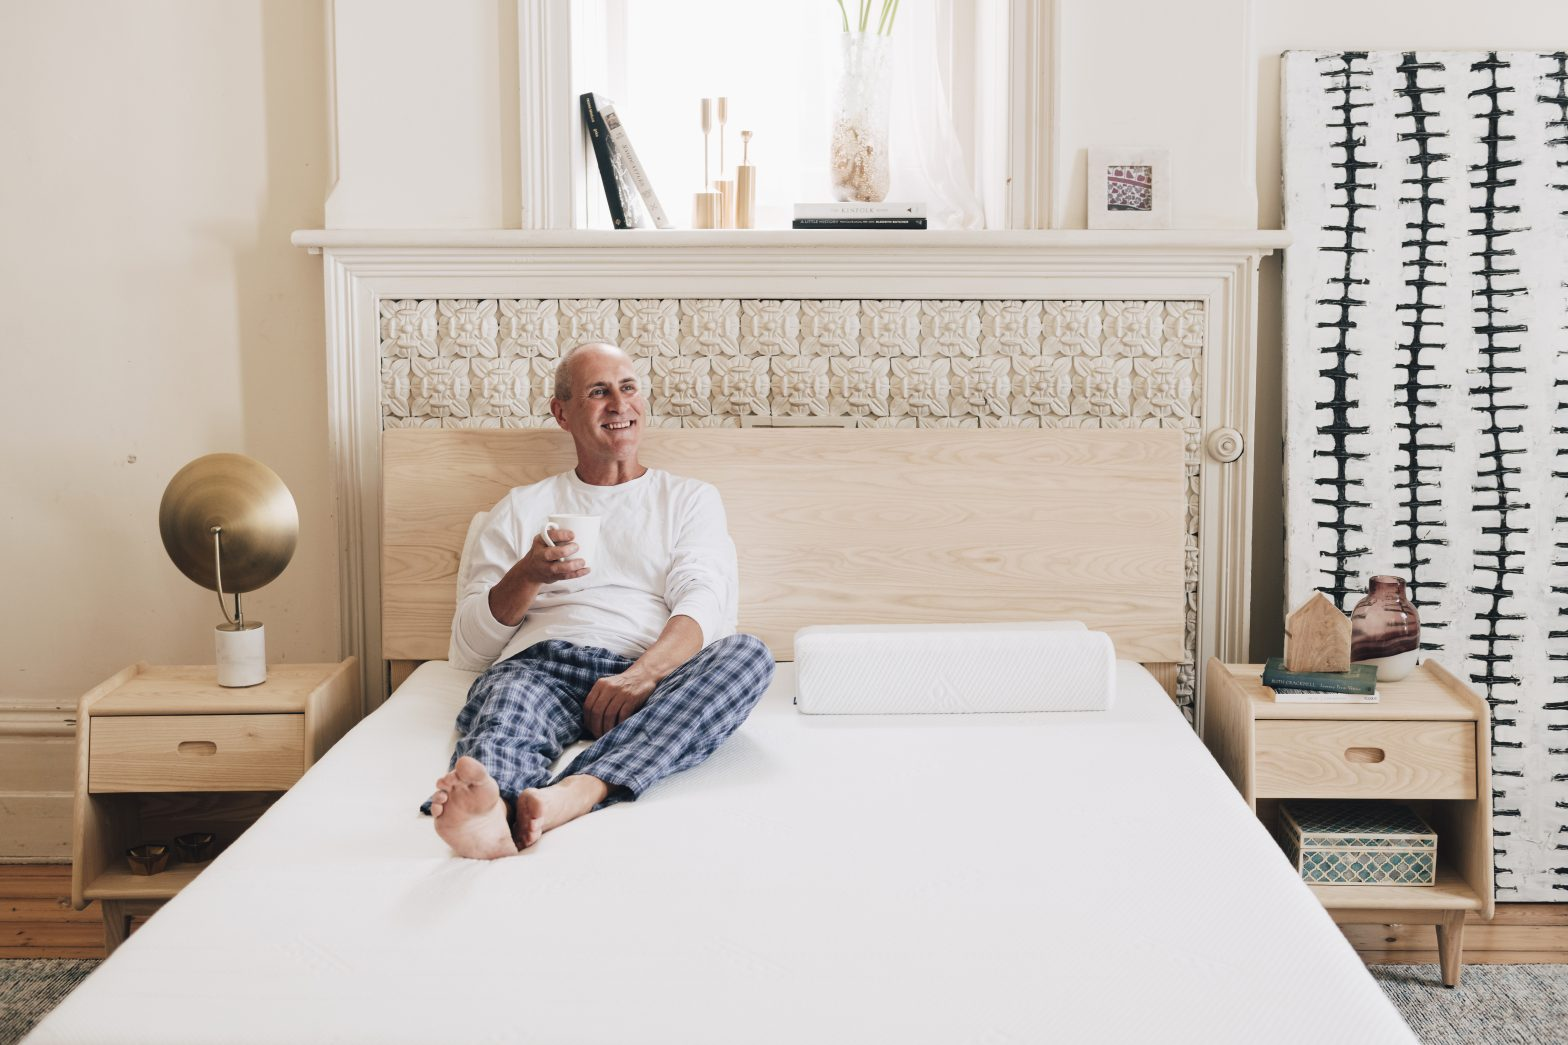 Image of a man in his 50-60's sitting upright in bed with a drink in his hand, looking off camera